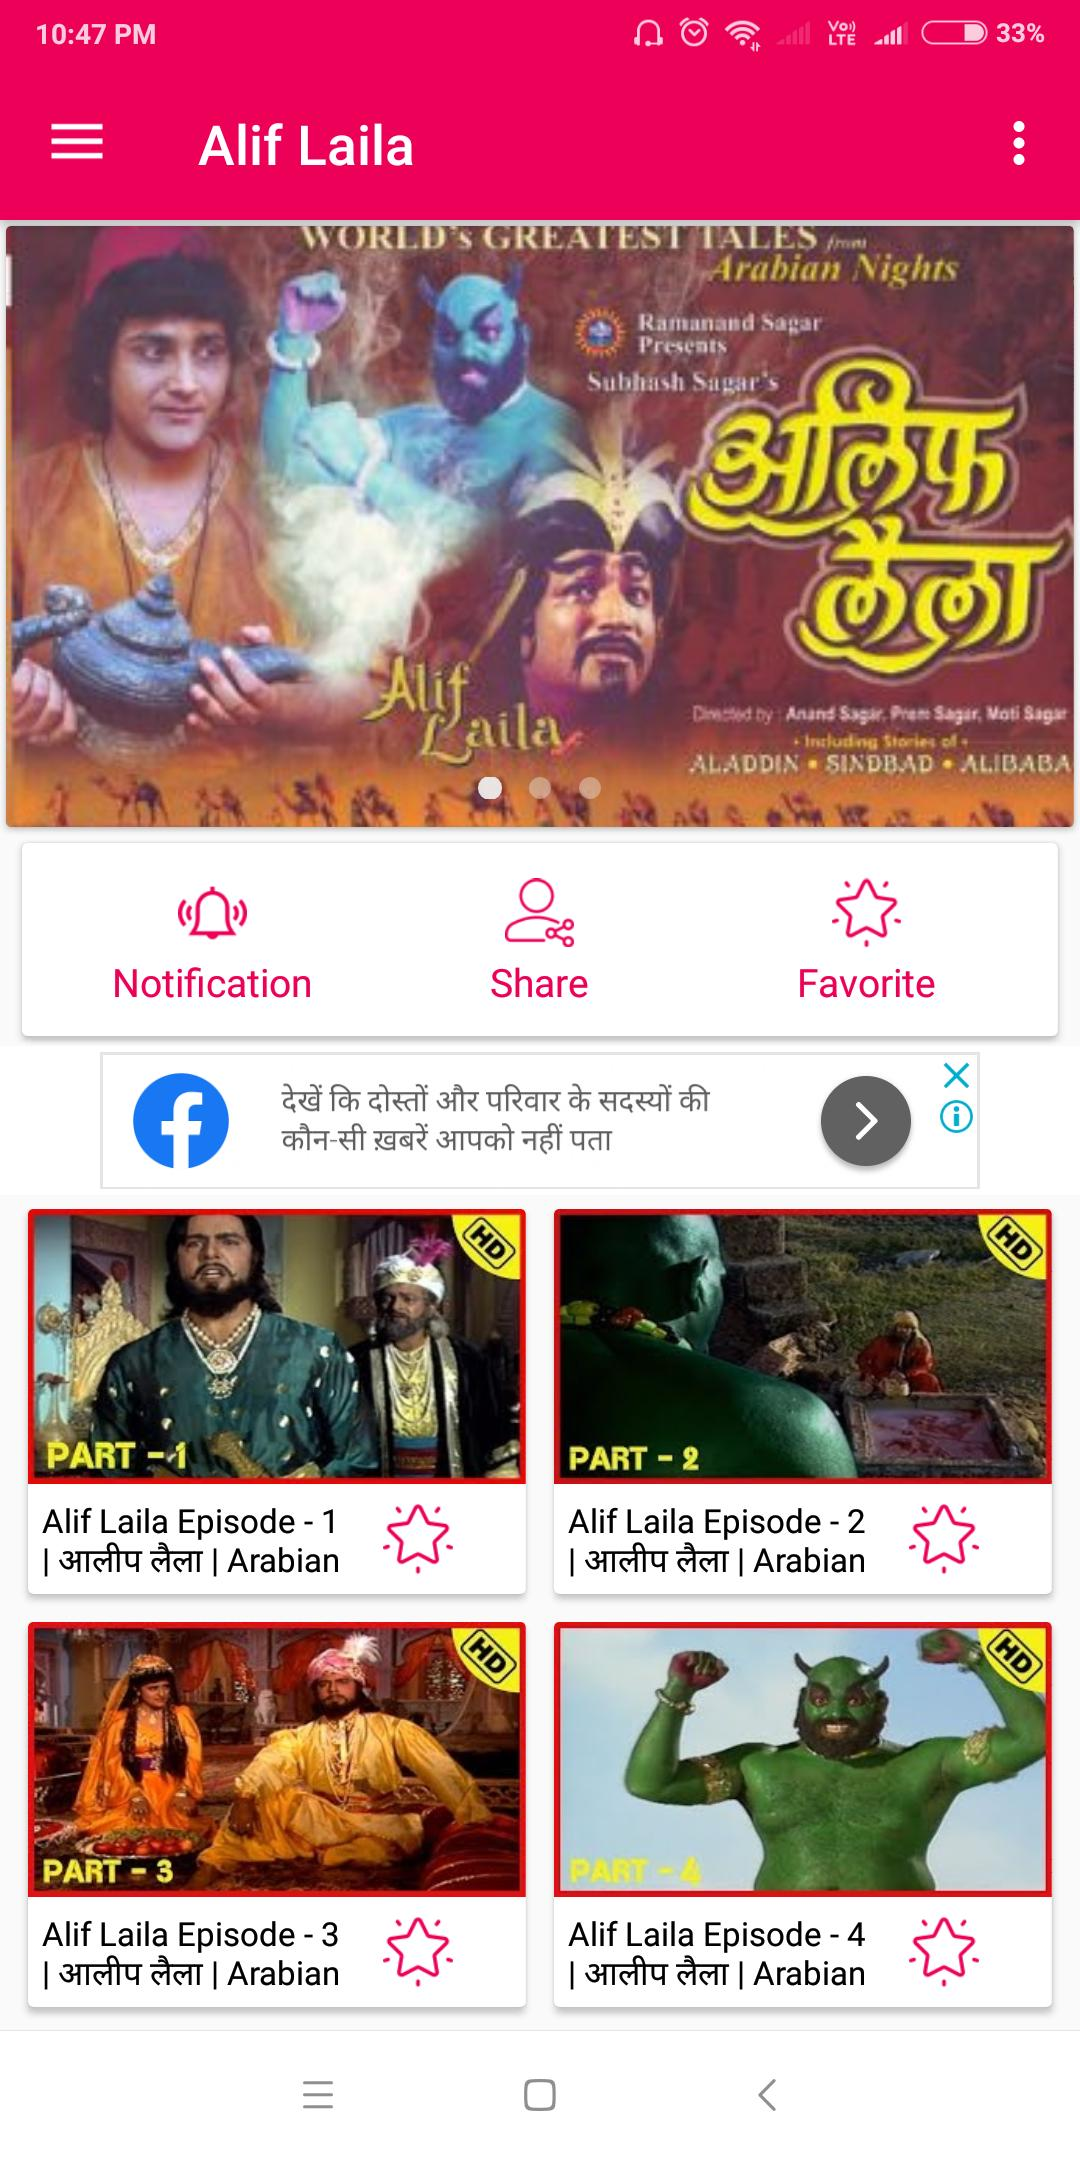 Alif Laila for Android - APK Download